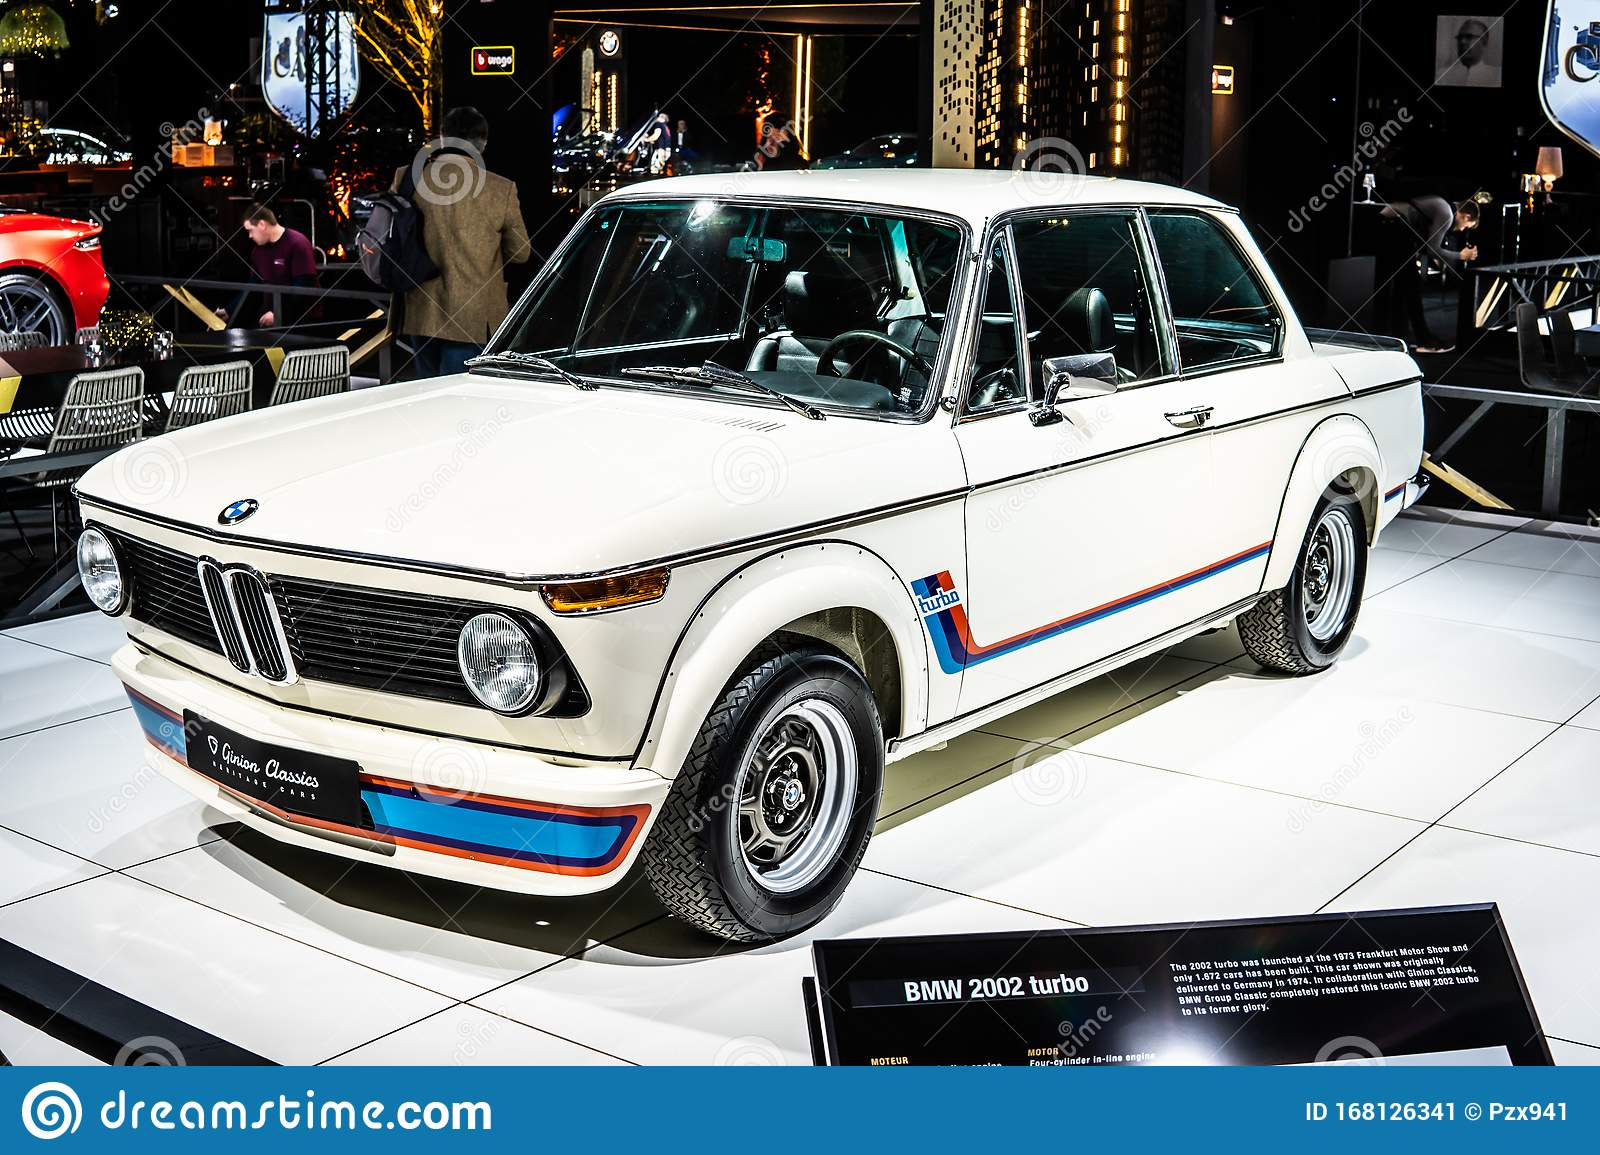 Vintage White Iconic Bmw 2002 Turbo 1973 Ginion Classics Glossy And Shiny Old Classic Retro Car At Brussels Motor Show Editorial Photo Image Of Classical Collection 168126341